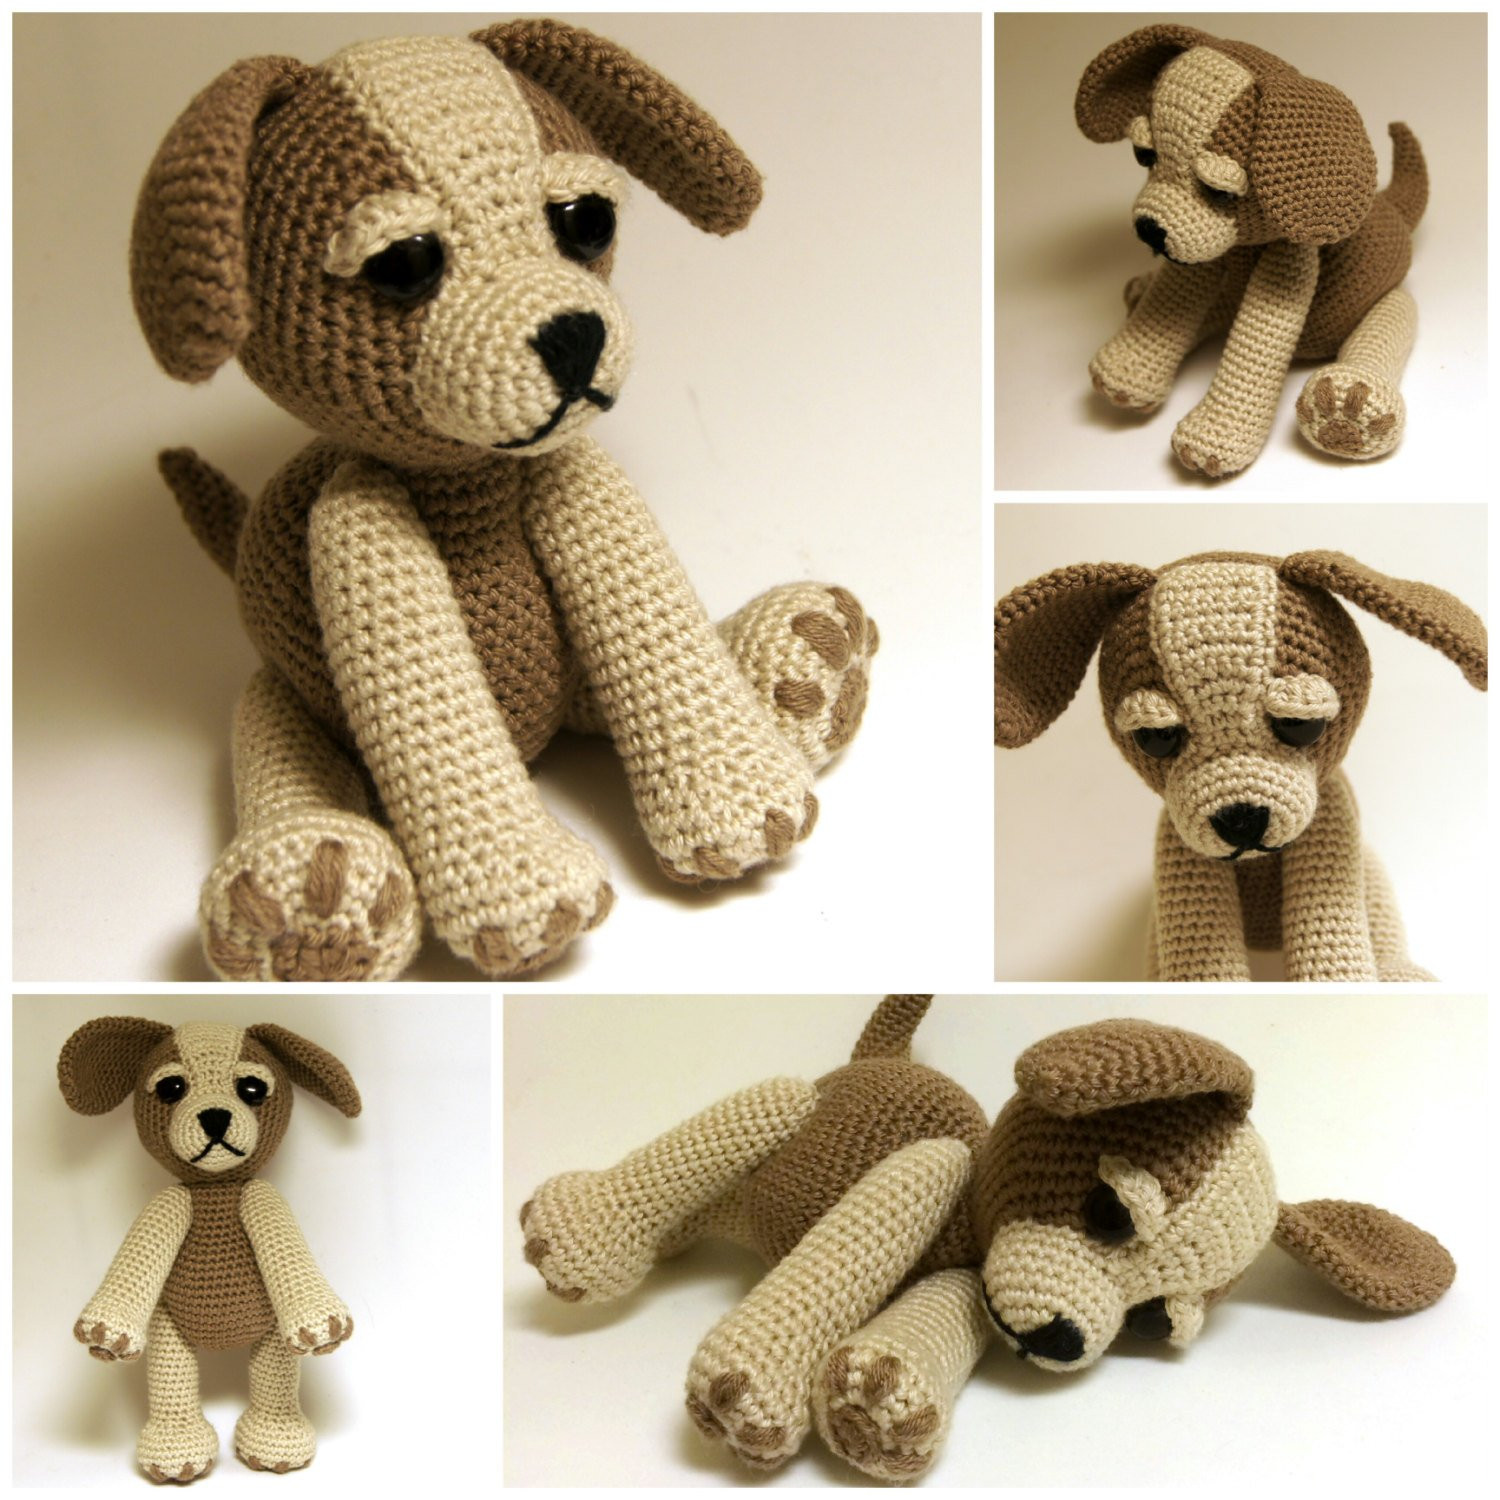 Free Crochet Animal Patterns Unique Crochet Pattern Sammy the Puppy Dog Crochet Dog Of Attractive 49 Pictures Free Crochet Animal Patterns